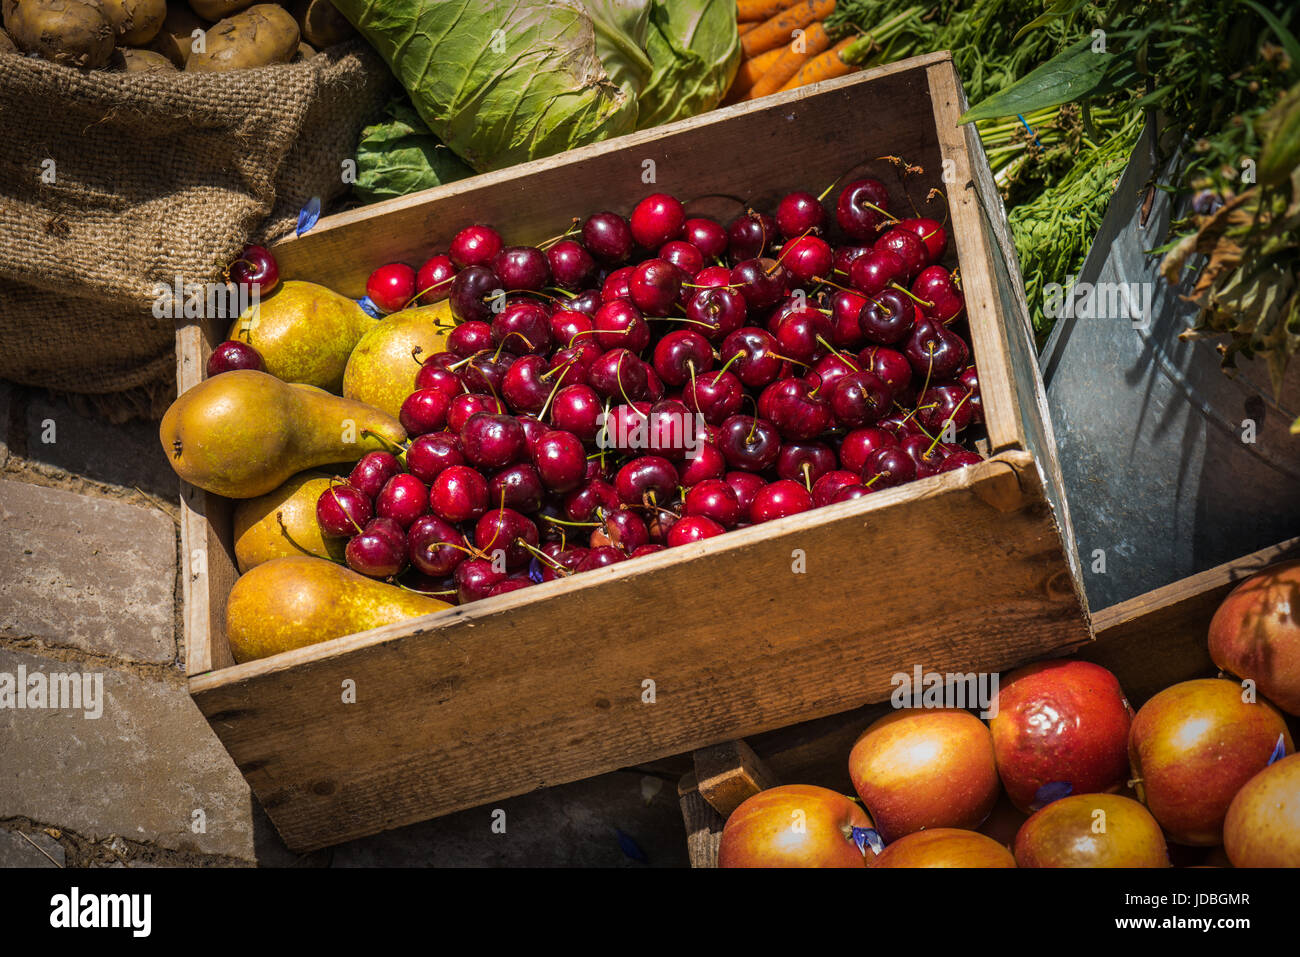 A display box of cherries and pears surrounded by various fruit and vegetables Stock Photo